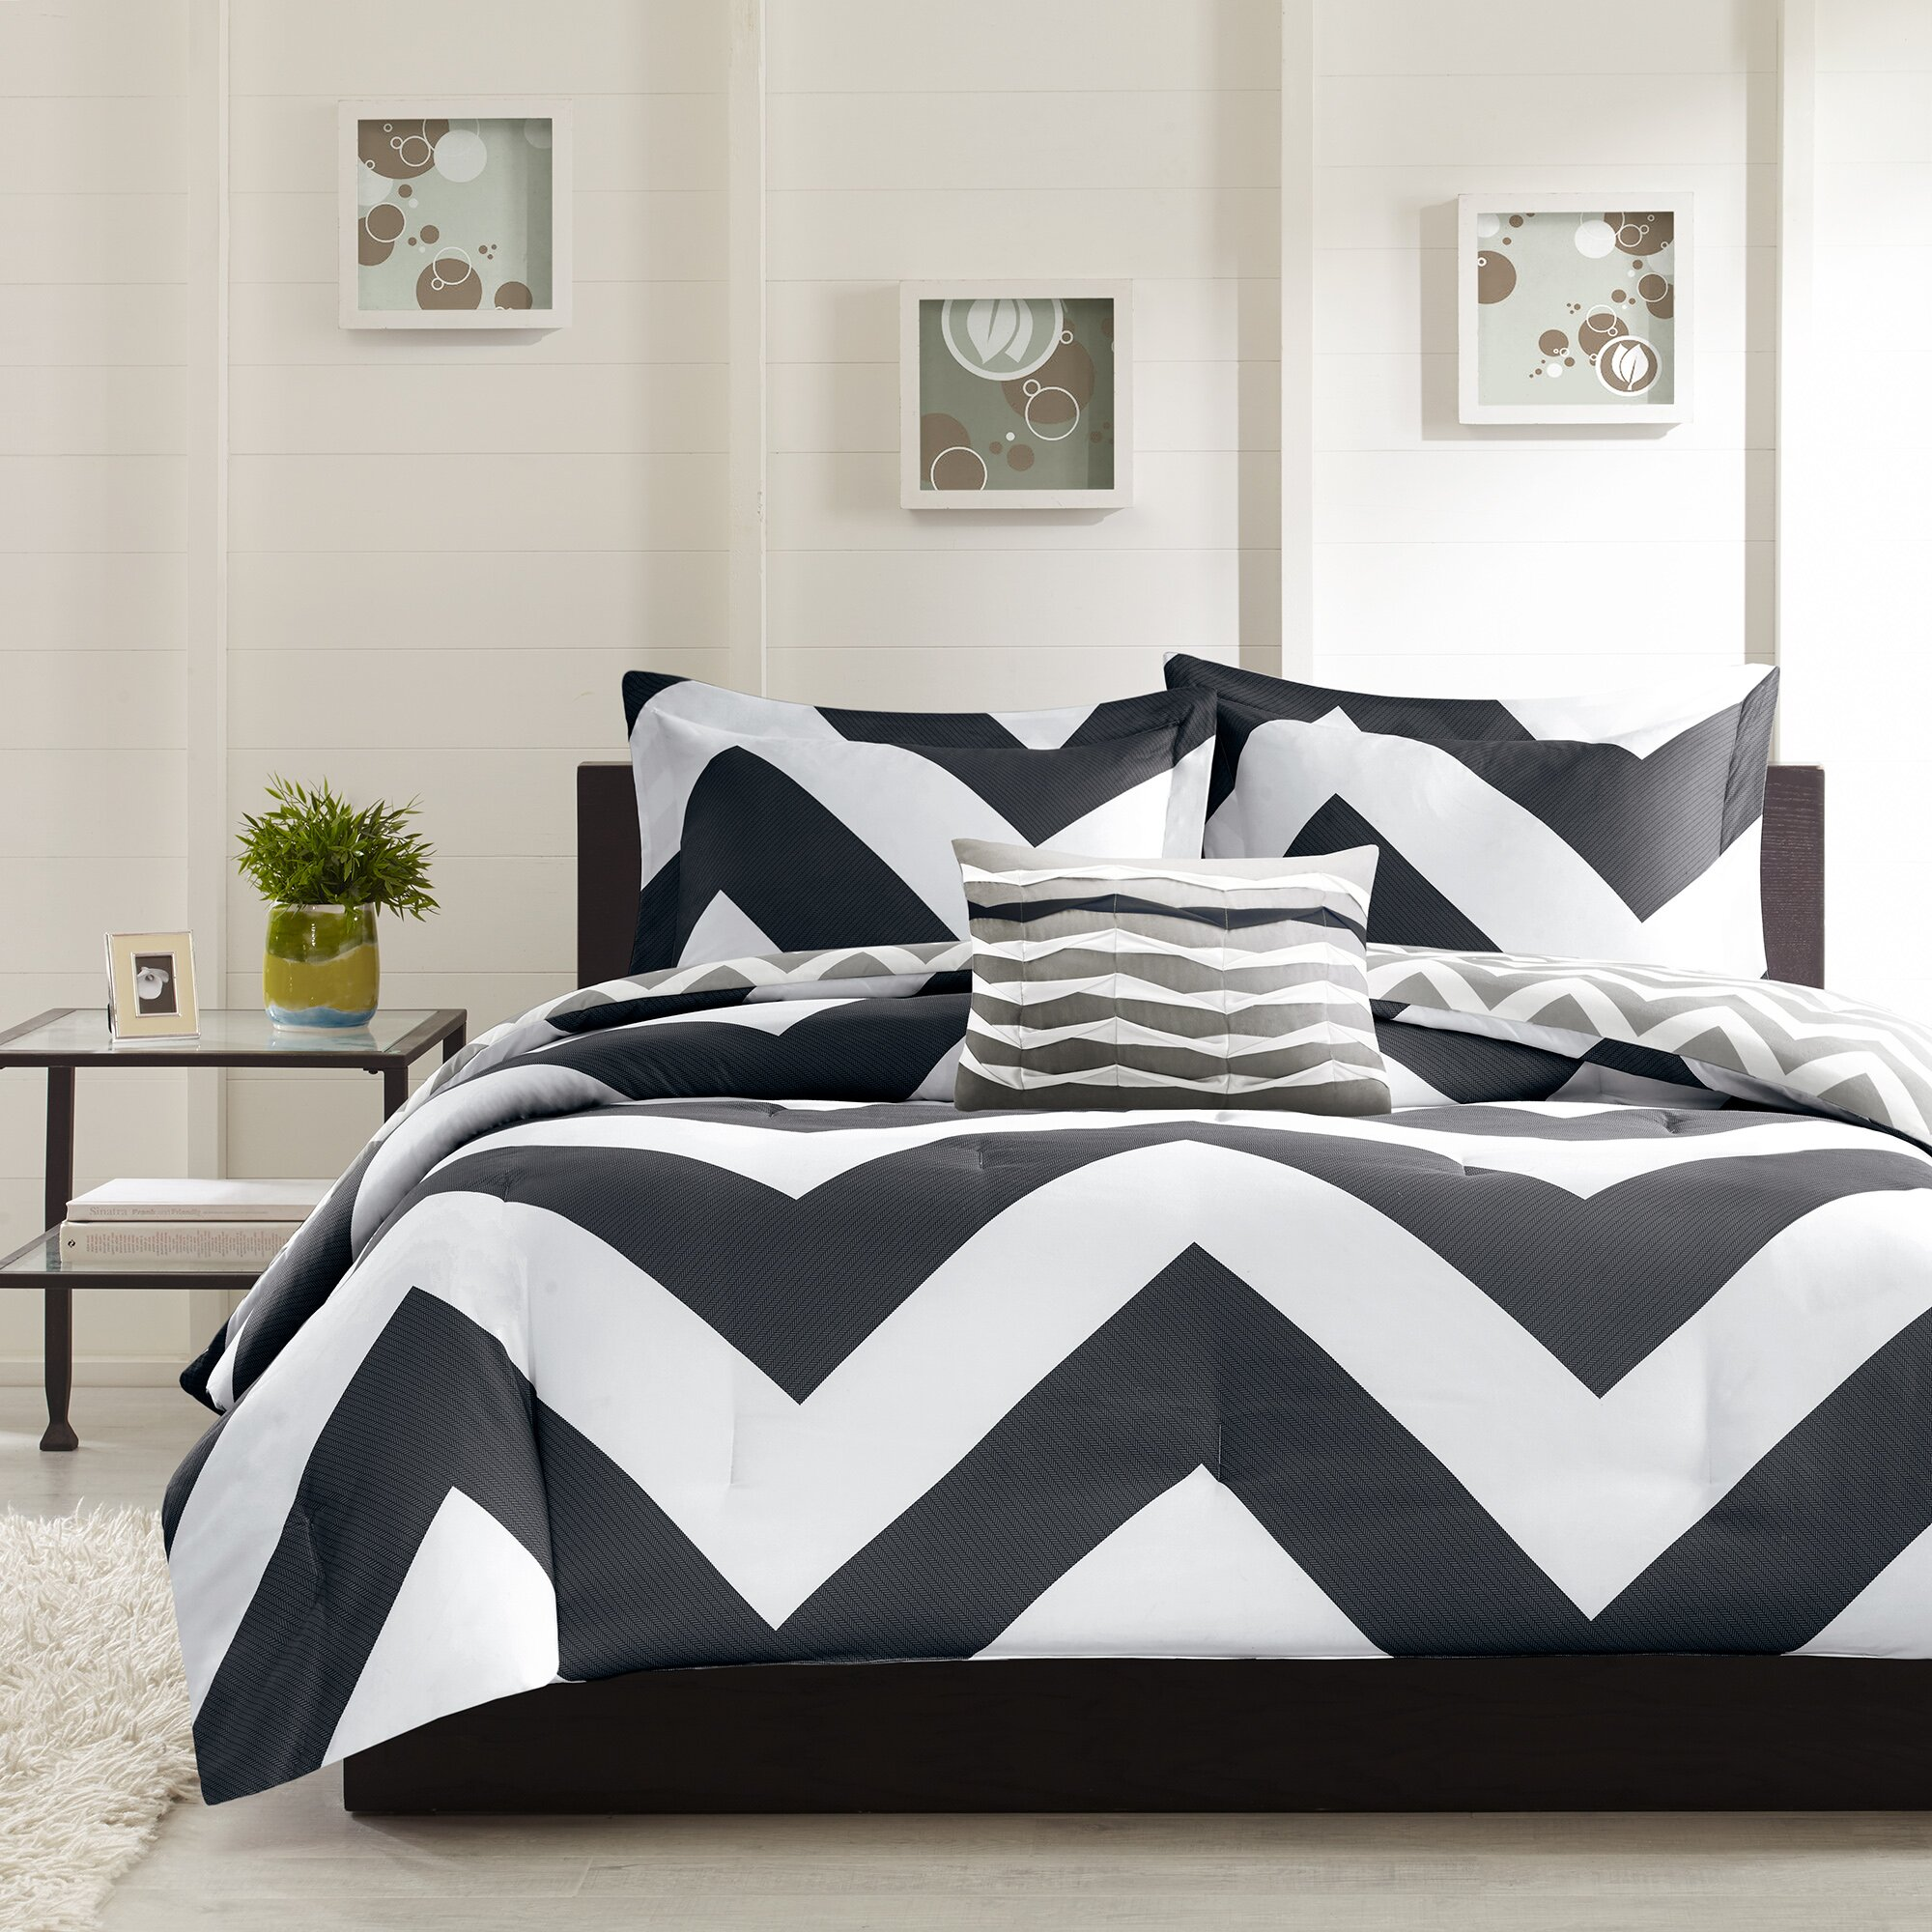 Bed sheet set black and white - Libra Reversible Comforter Set